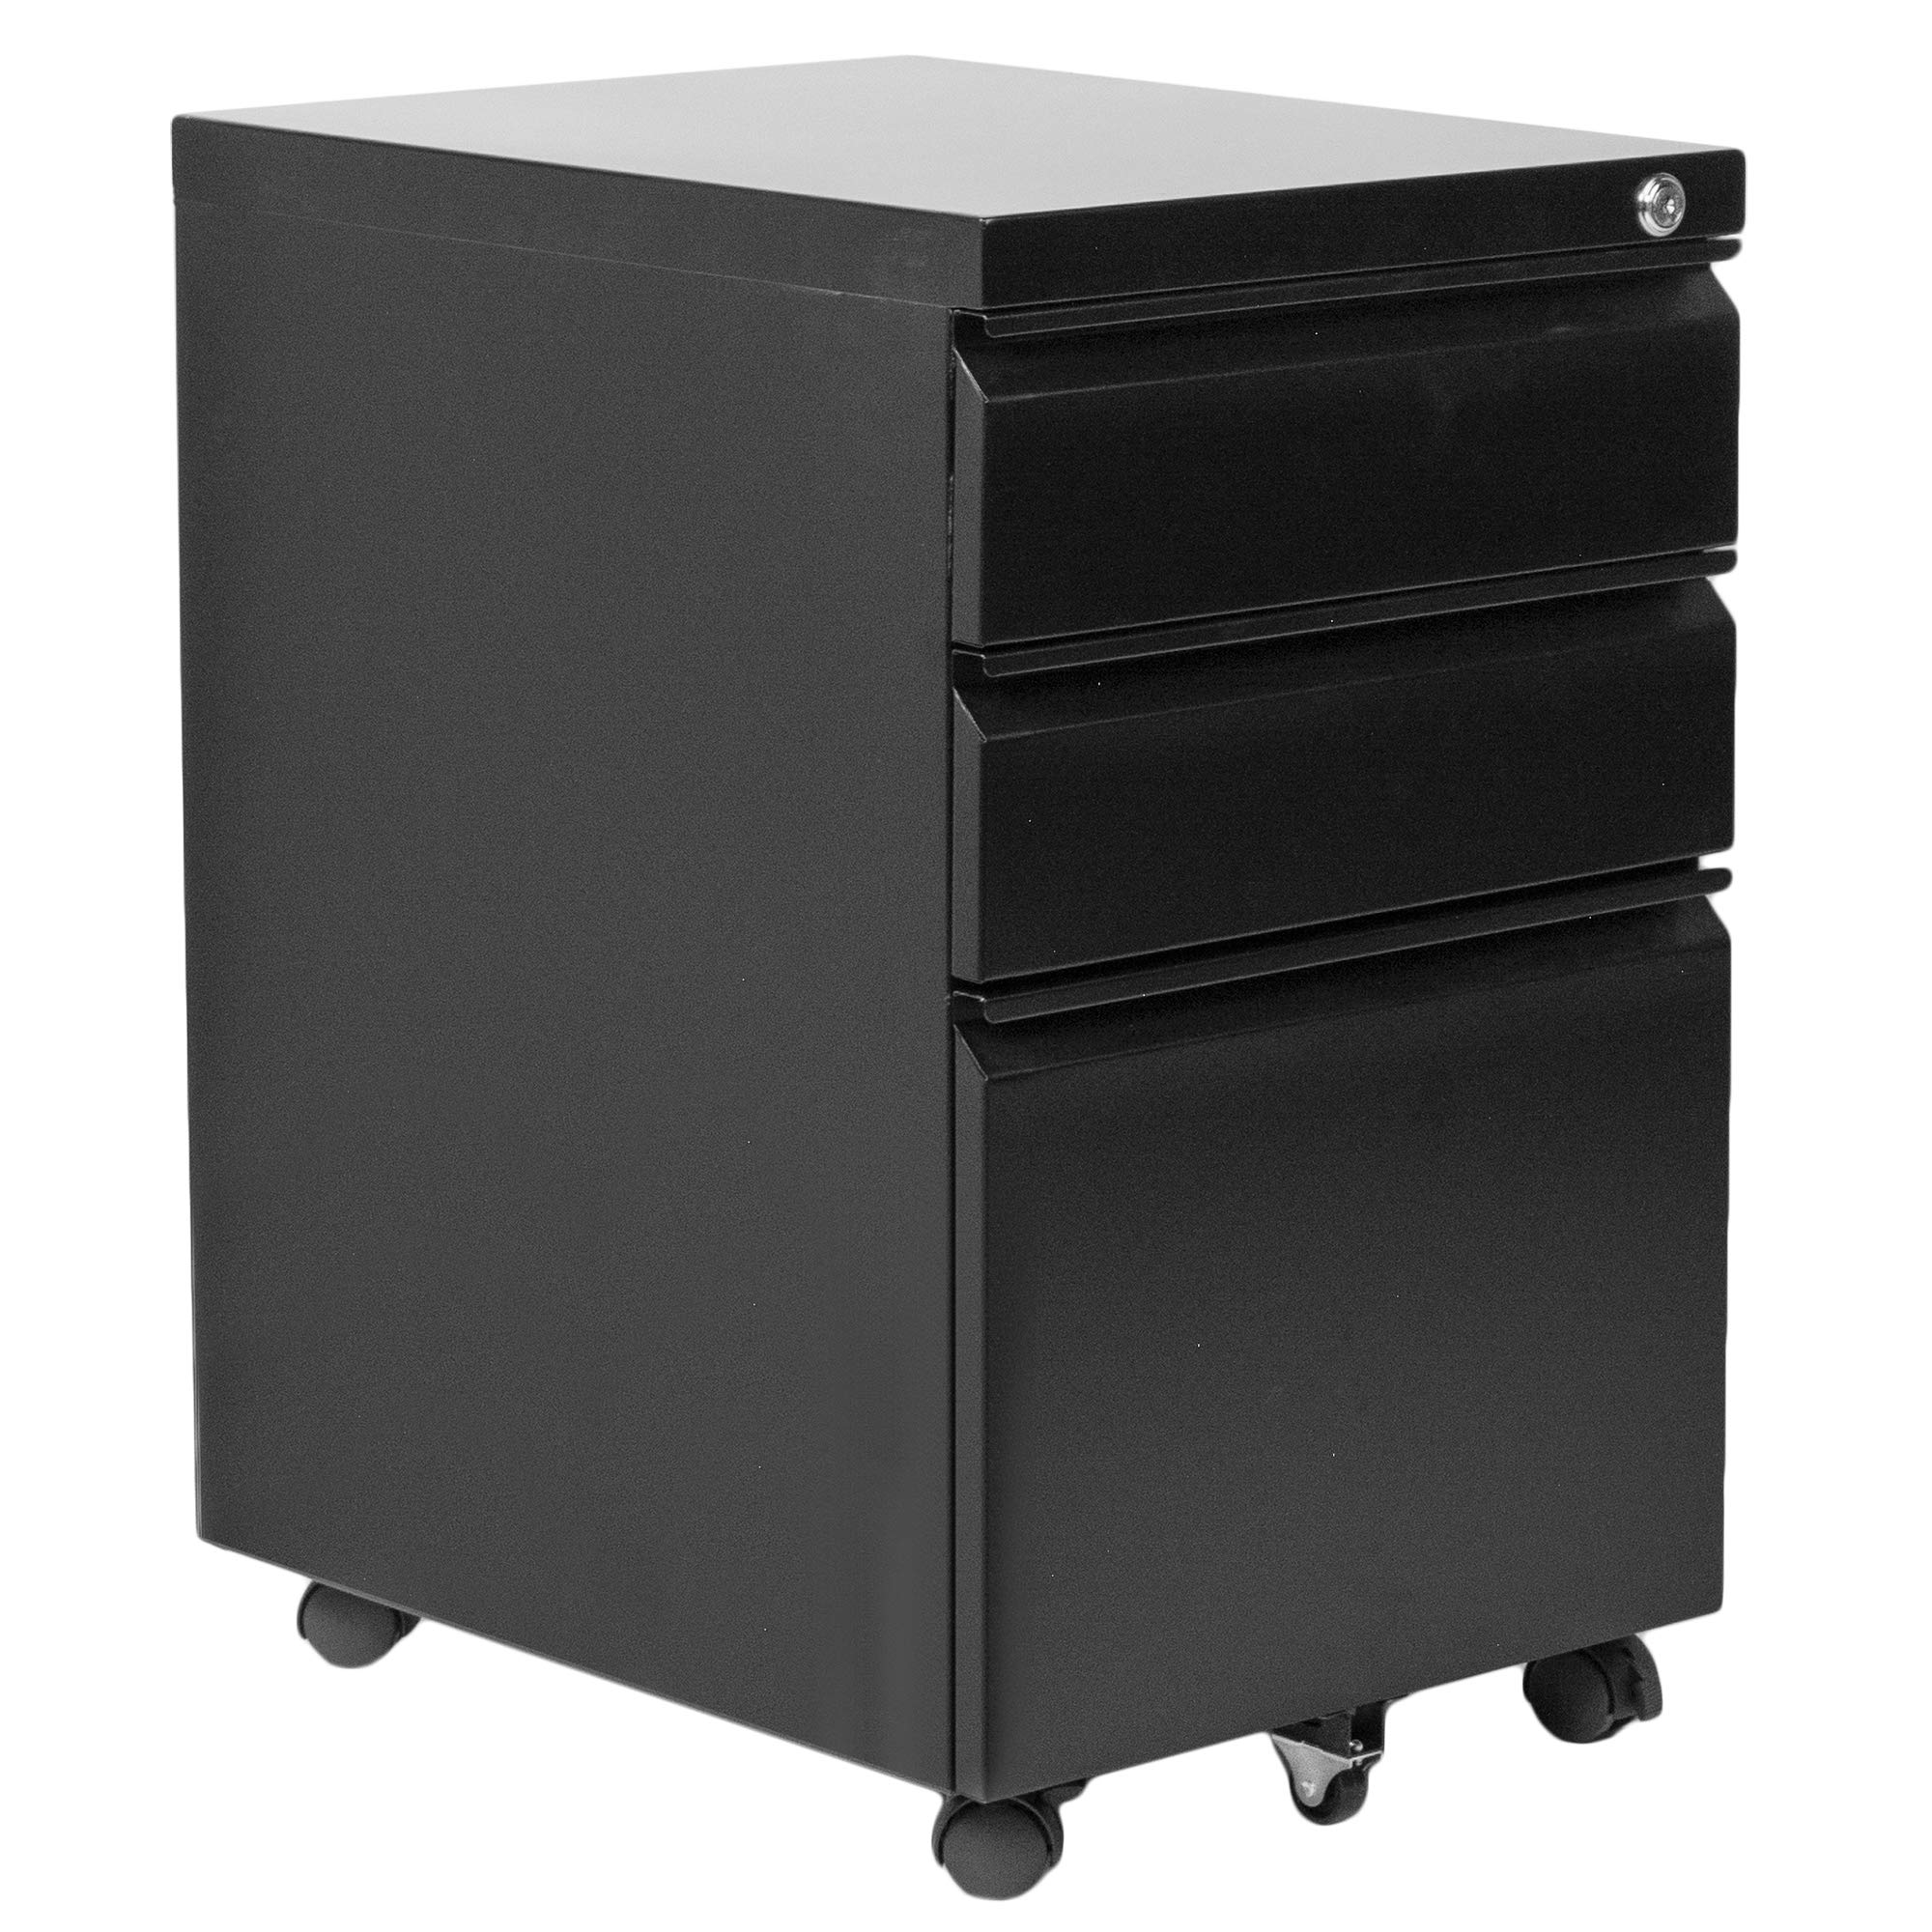 VIVO Black Steel 3 Drawer Mobile Office File Cabinet with Lock | Rolling Pedestal Storage Cabinet on Wheels (FILE-MB01B)